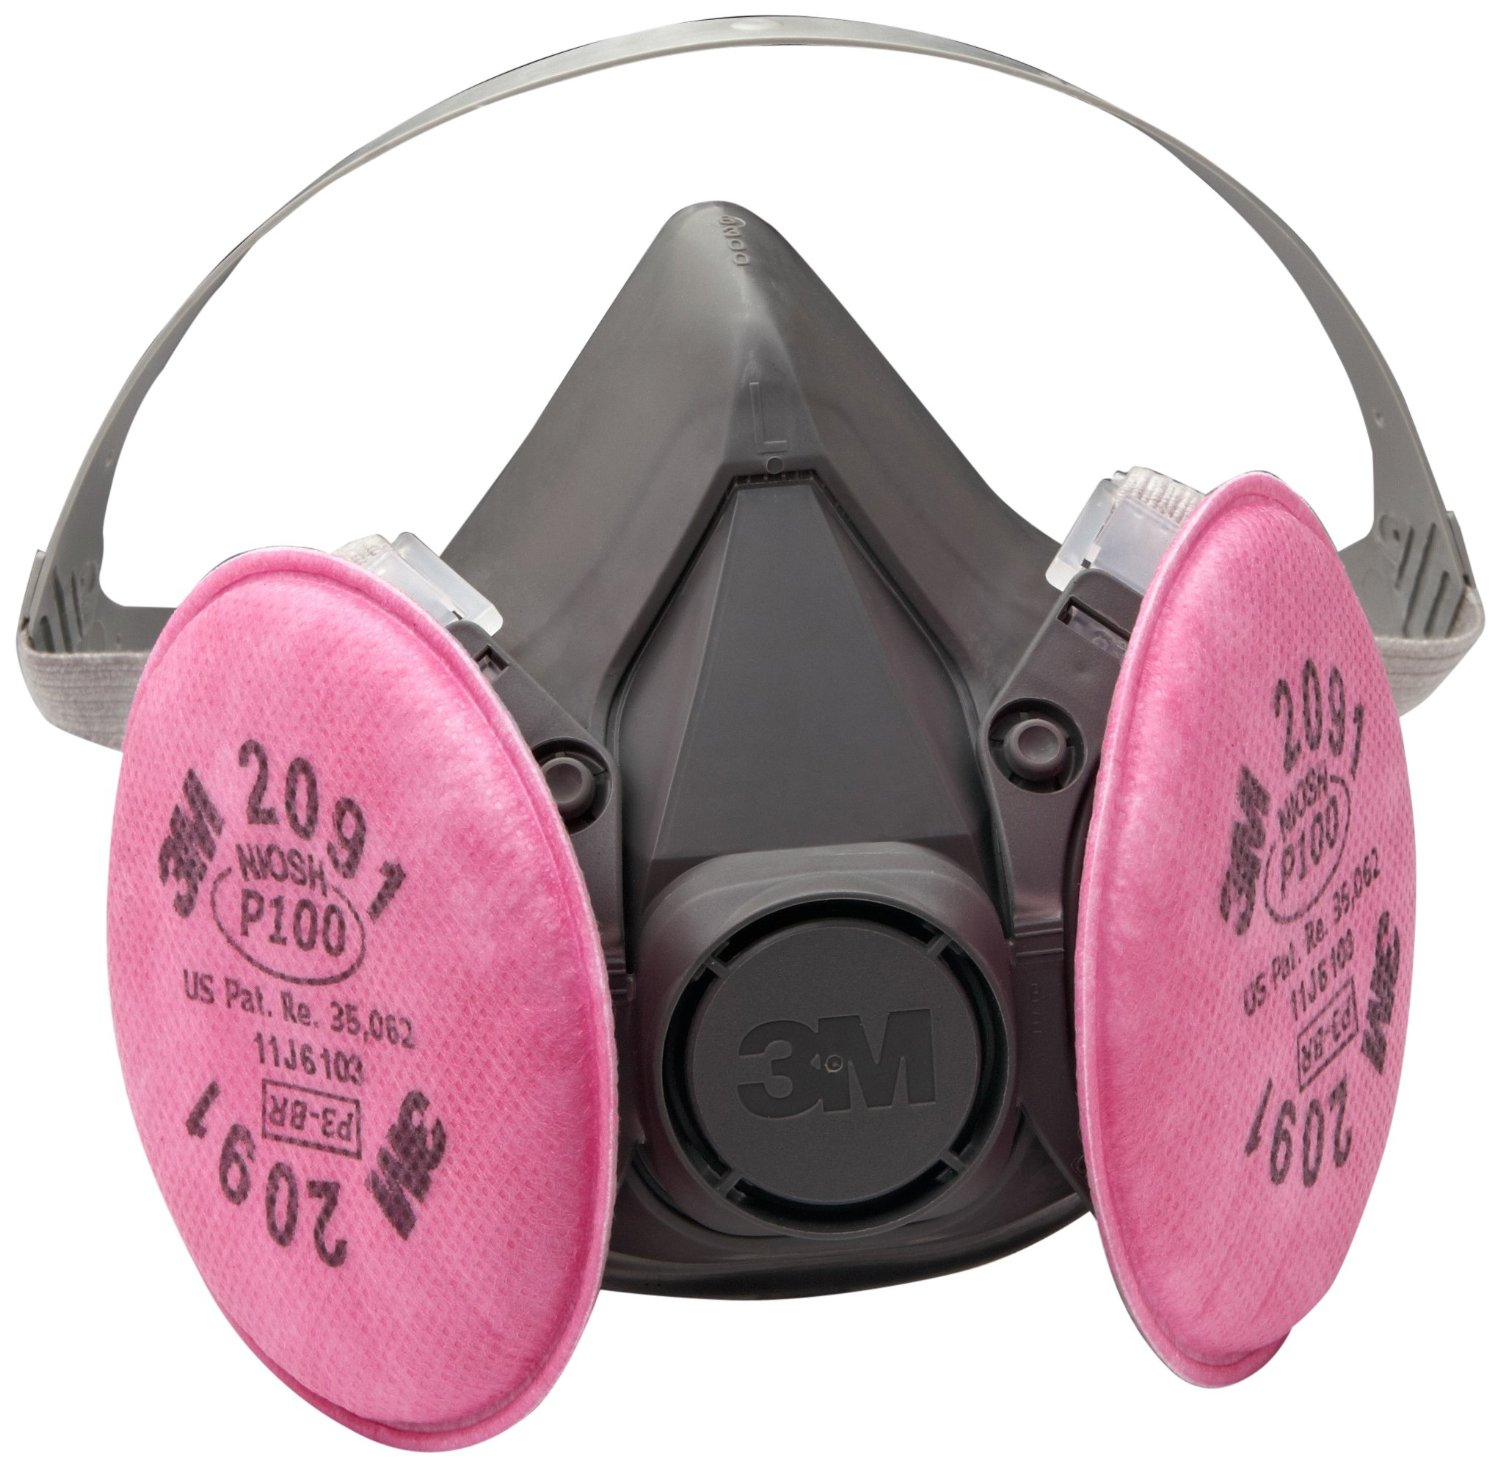 3M 6391 P100 Reusable Respirator Gas Mask Large by 3M